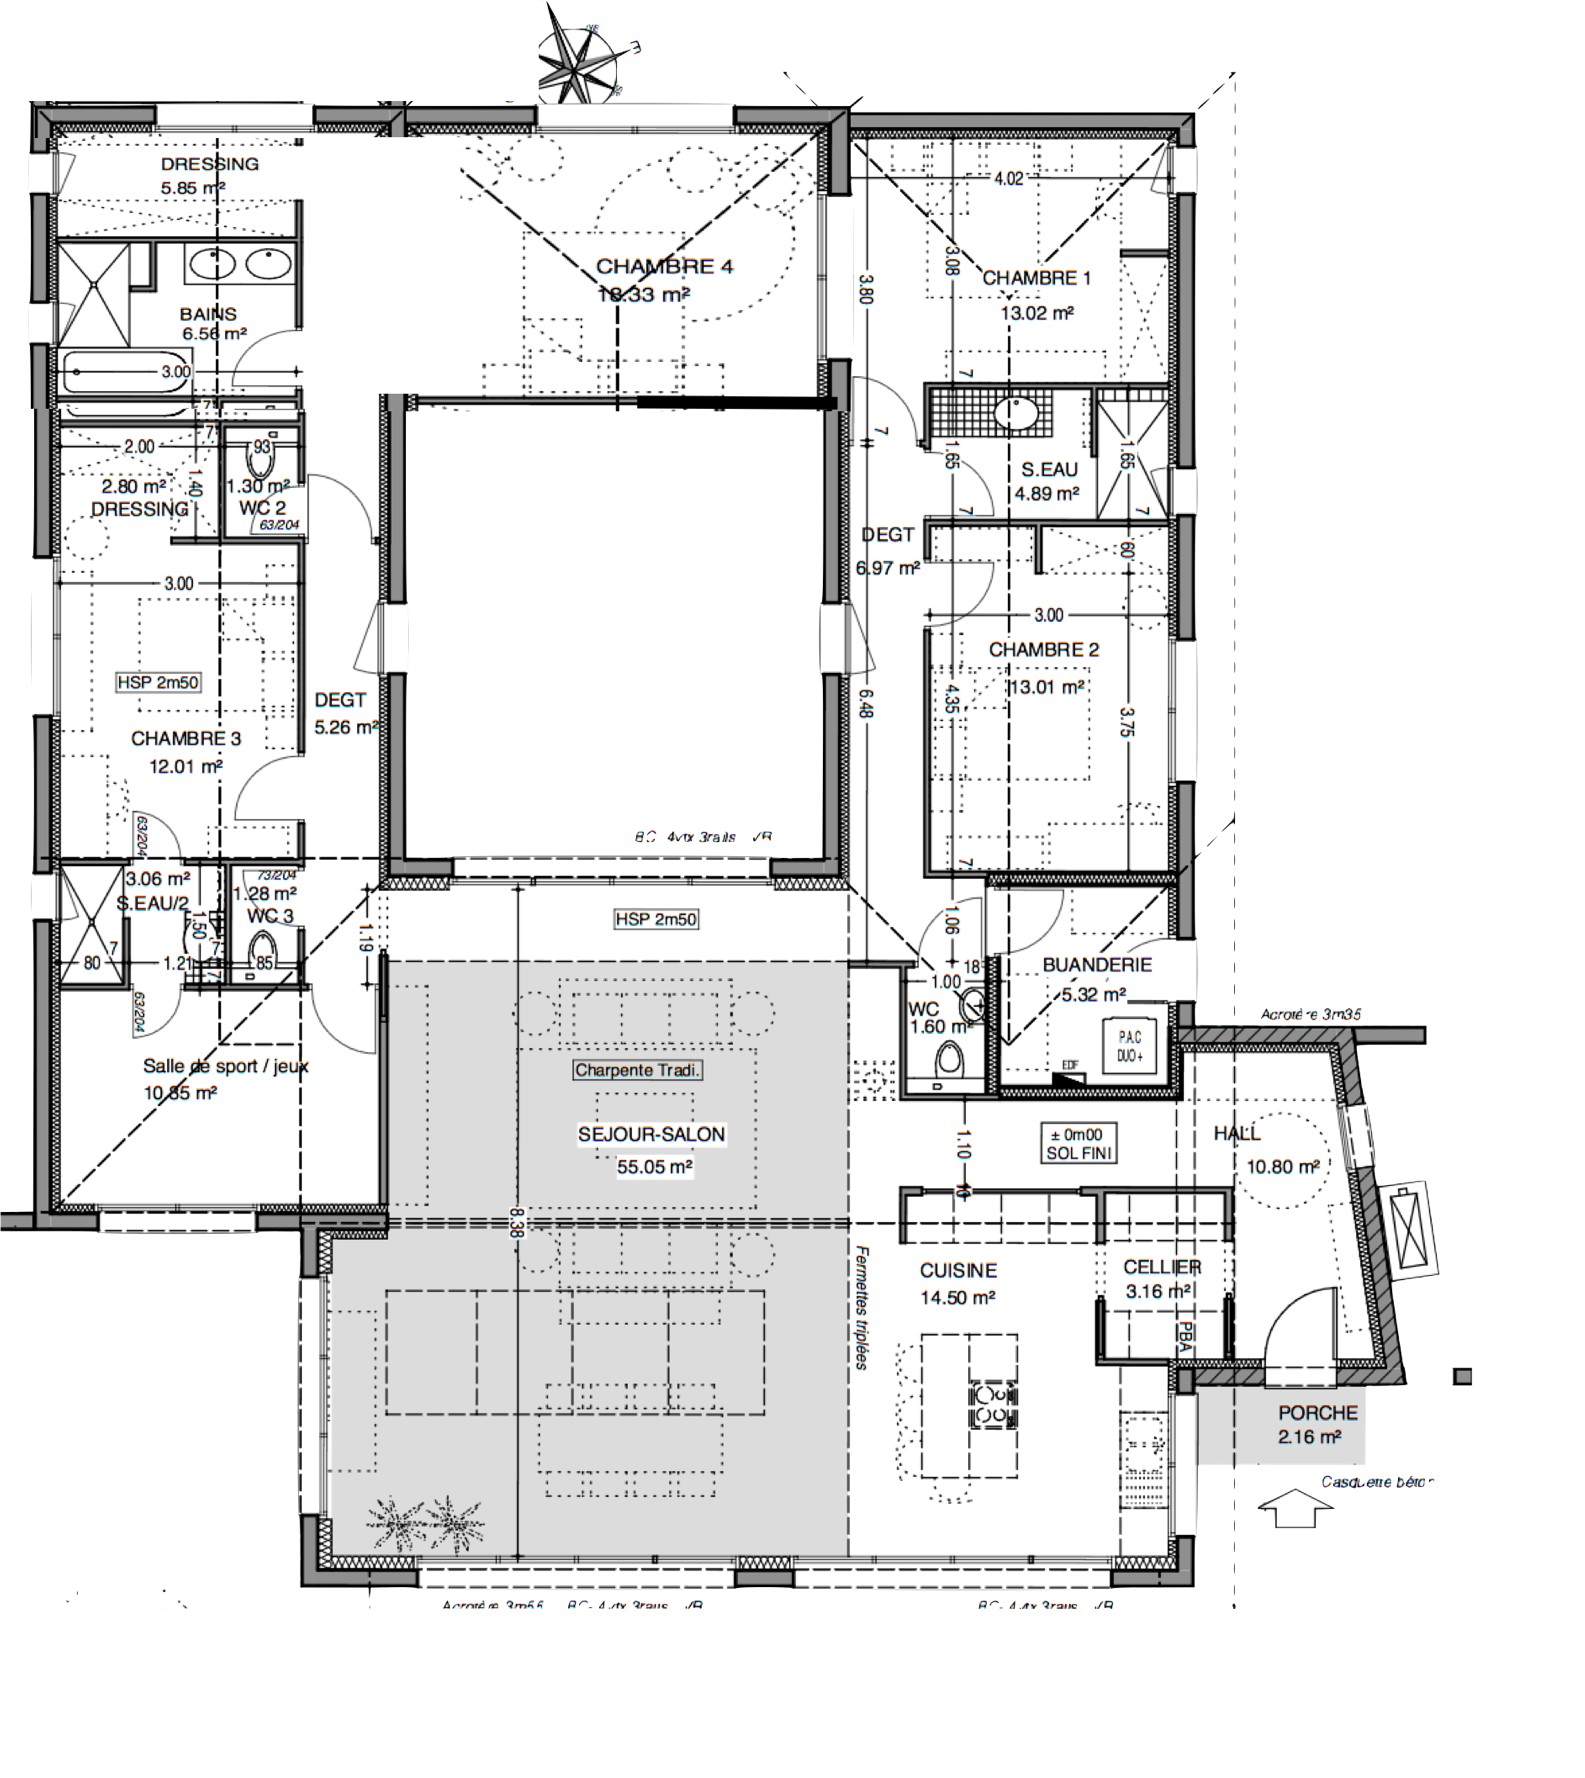 Plan de maison plain pied 200m2 for Plain pied plan